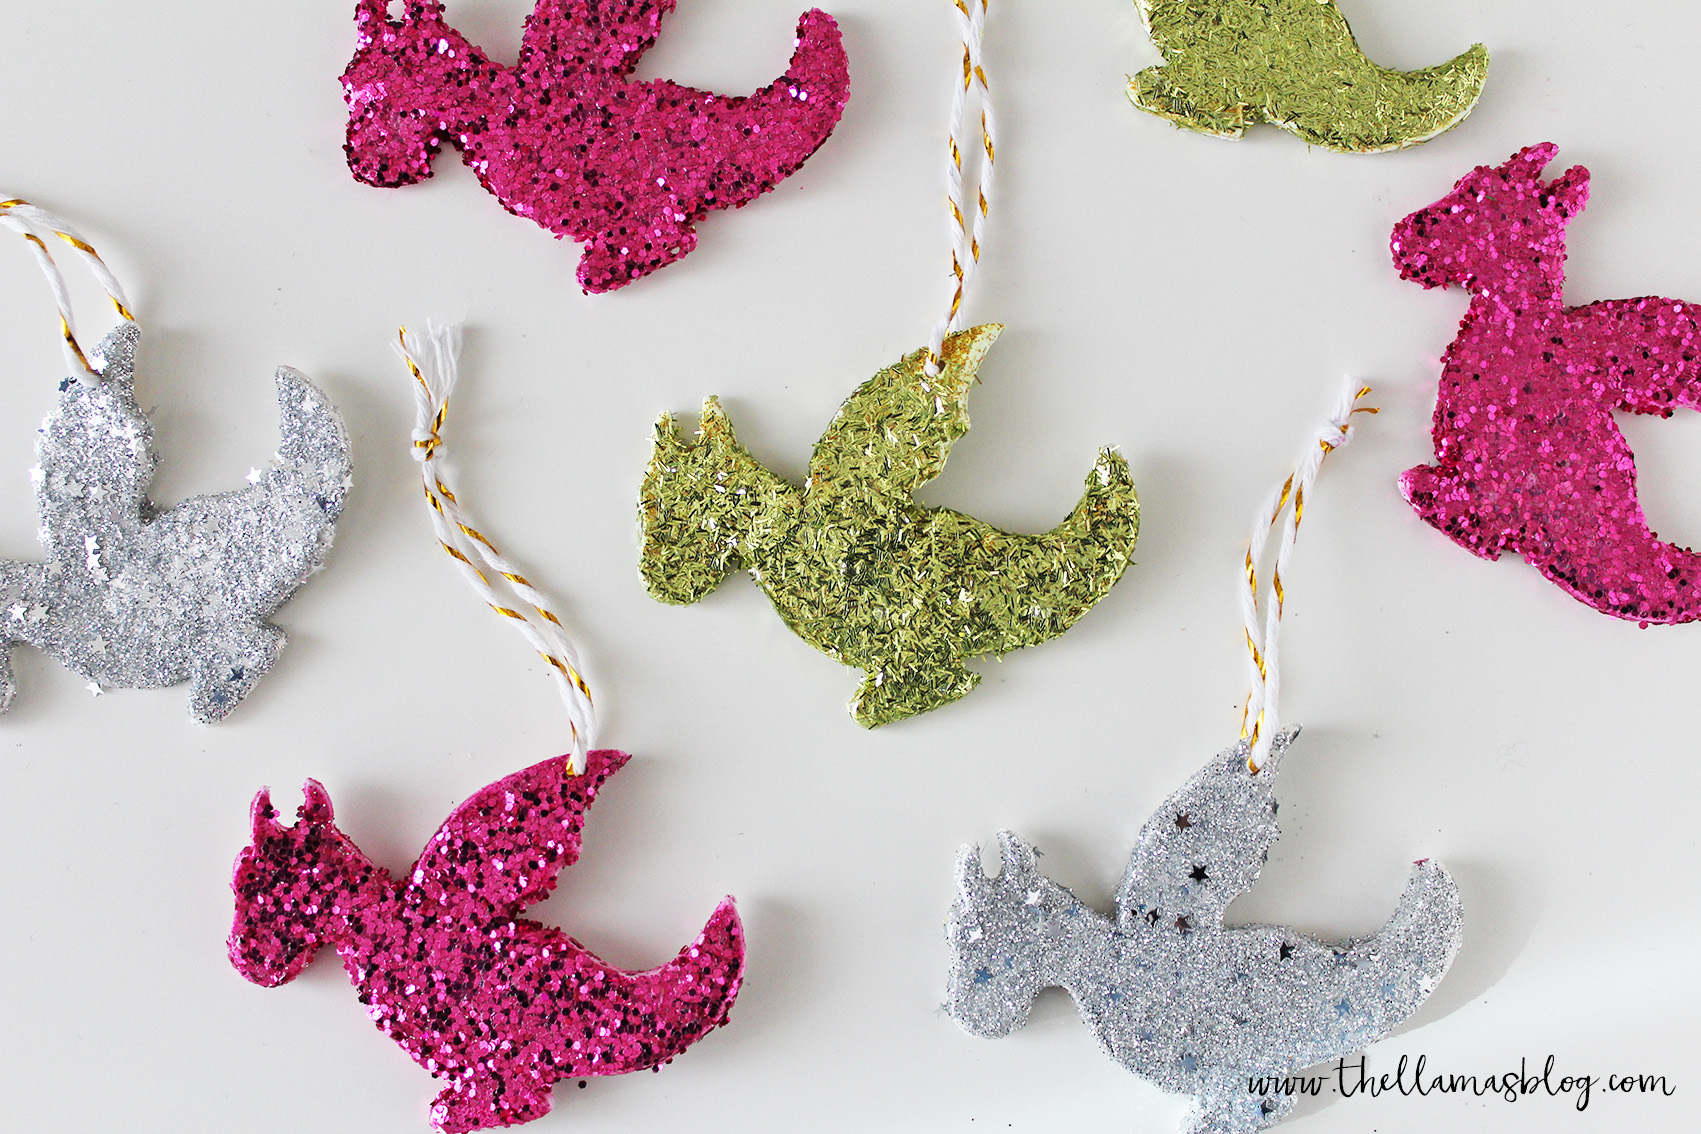 thellamas_DIY_sparkling_dragon_decorations_onwhite_the_llamas_blog